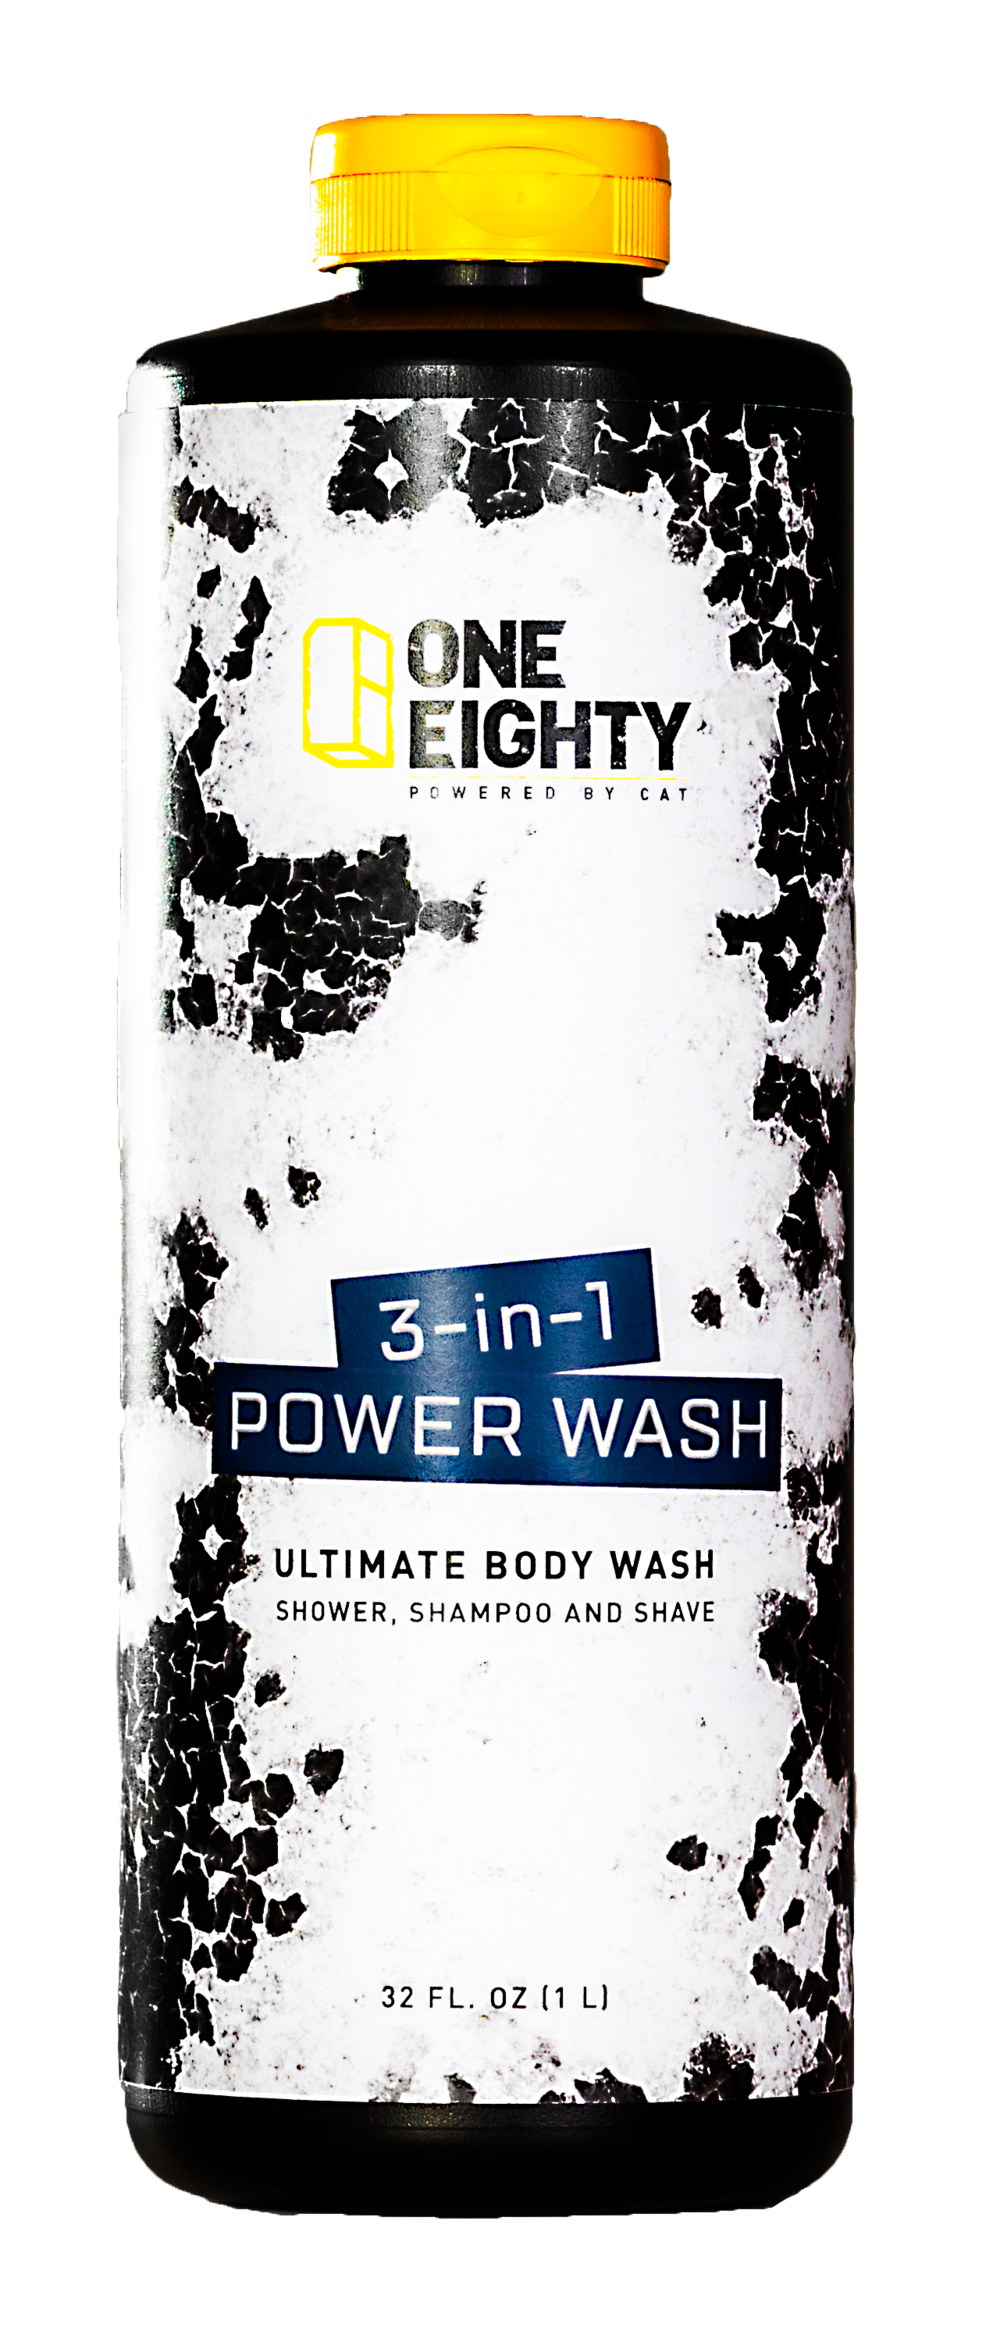 Cat One Eighty 3-in-1 Power Wash.png